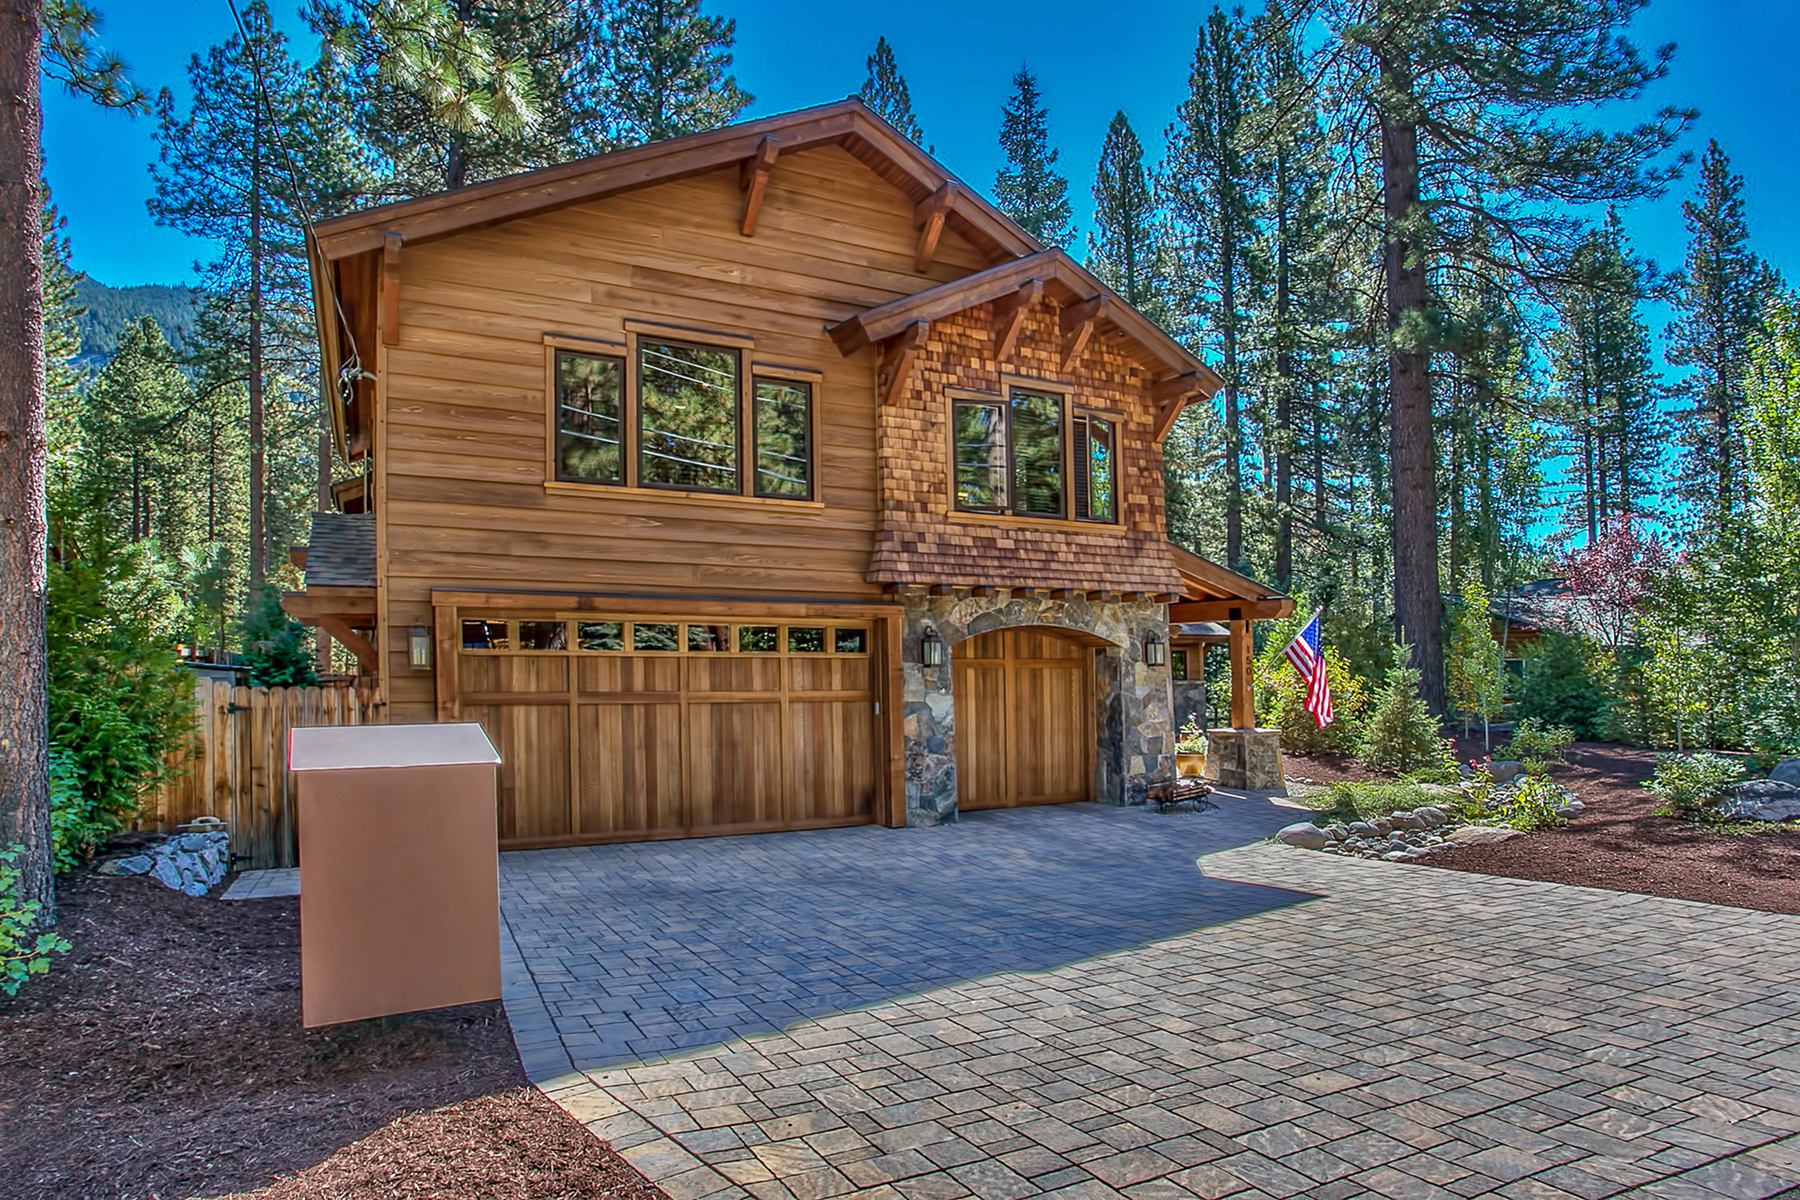 Single Family Home for Sale at 150 Pine Cone Road Mill Creek, Incline Village, Nevada 89451 United States